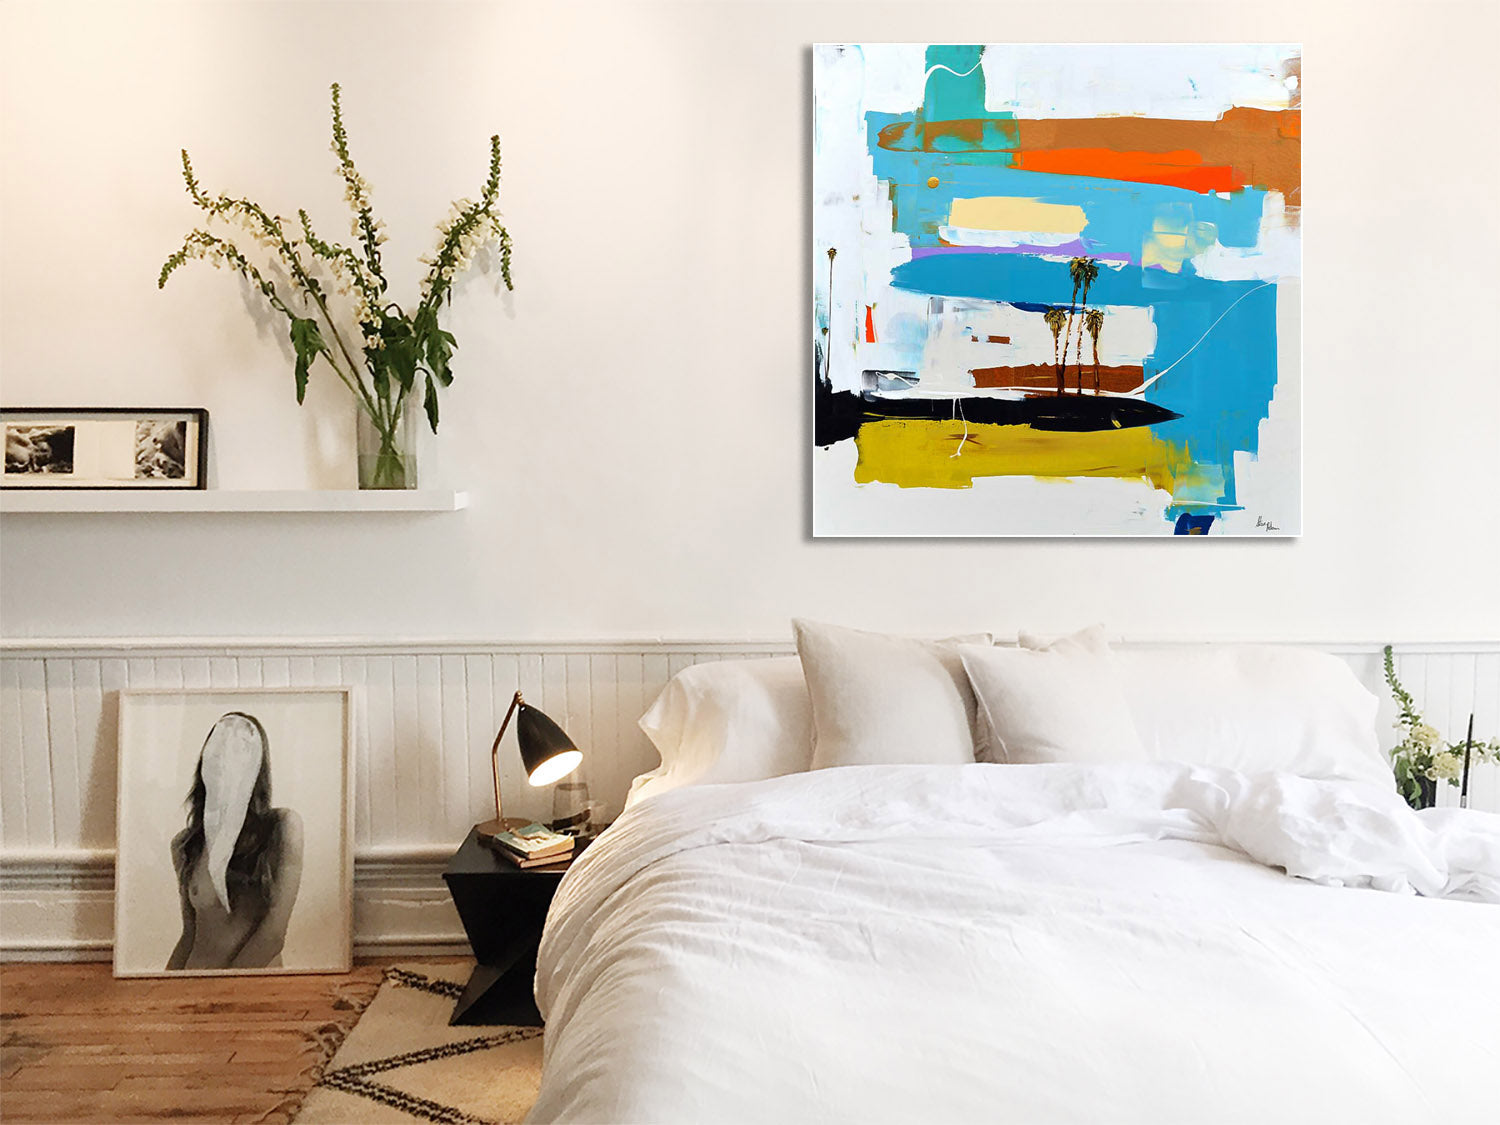 Vibrant Abstract Painting on Wall